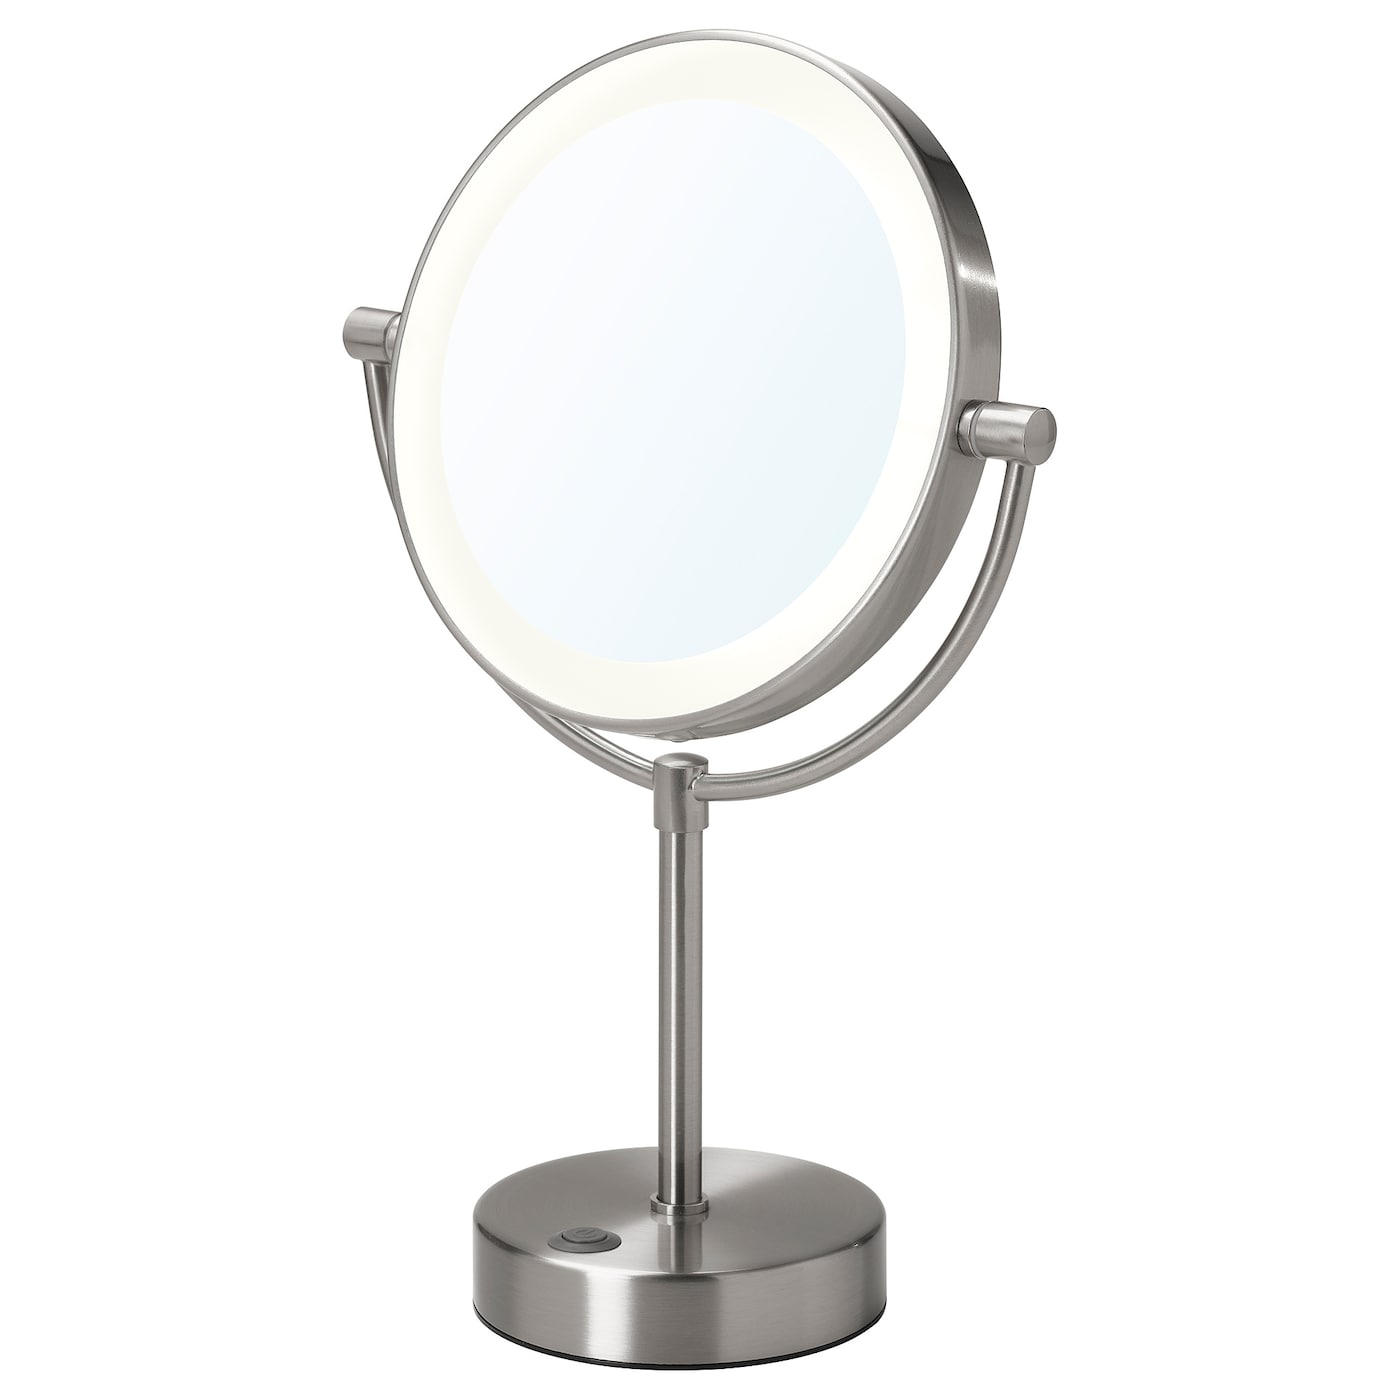 Ikea Specchio Make Up kaitum mirror with built-in light - battery operated 7 7/8 ""